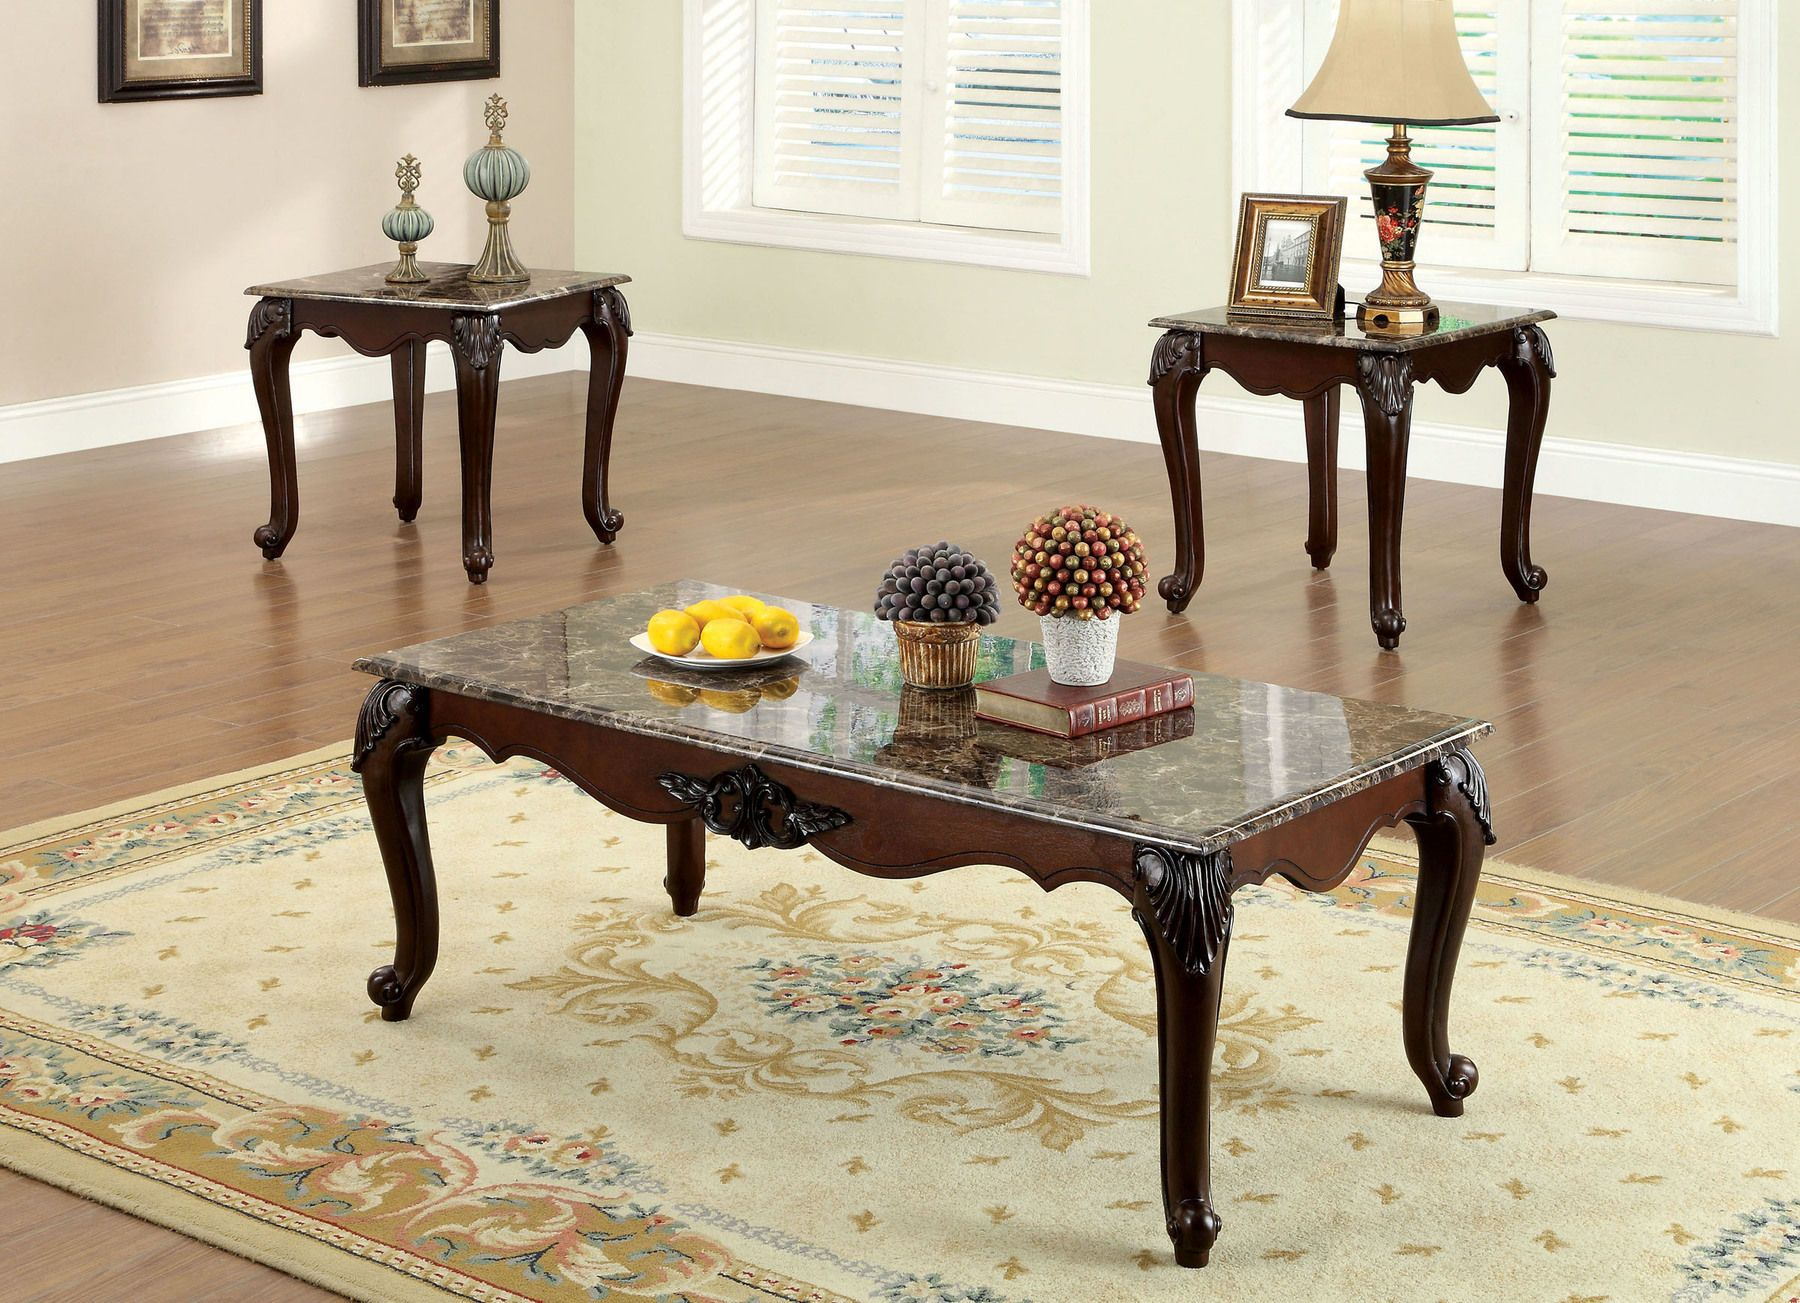 Colcester Coffee Table 2 End Tables Cm4423 3pk Furniture Of America Coffee Tables 3 Piece Coffee Table Set Coffee Table Wood Solid Coffee Table [ 1303 x 1800 Pixel ]